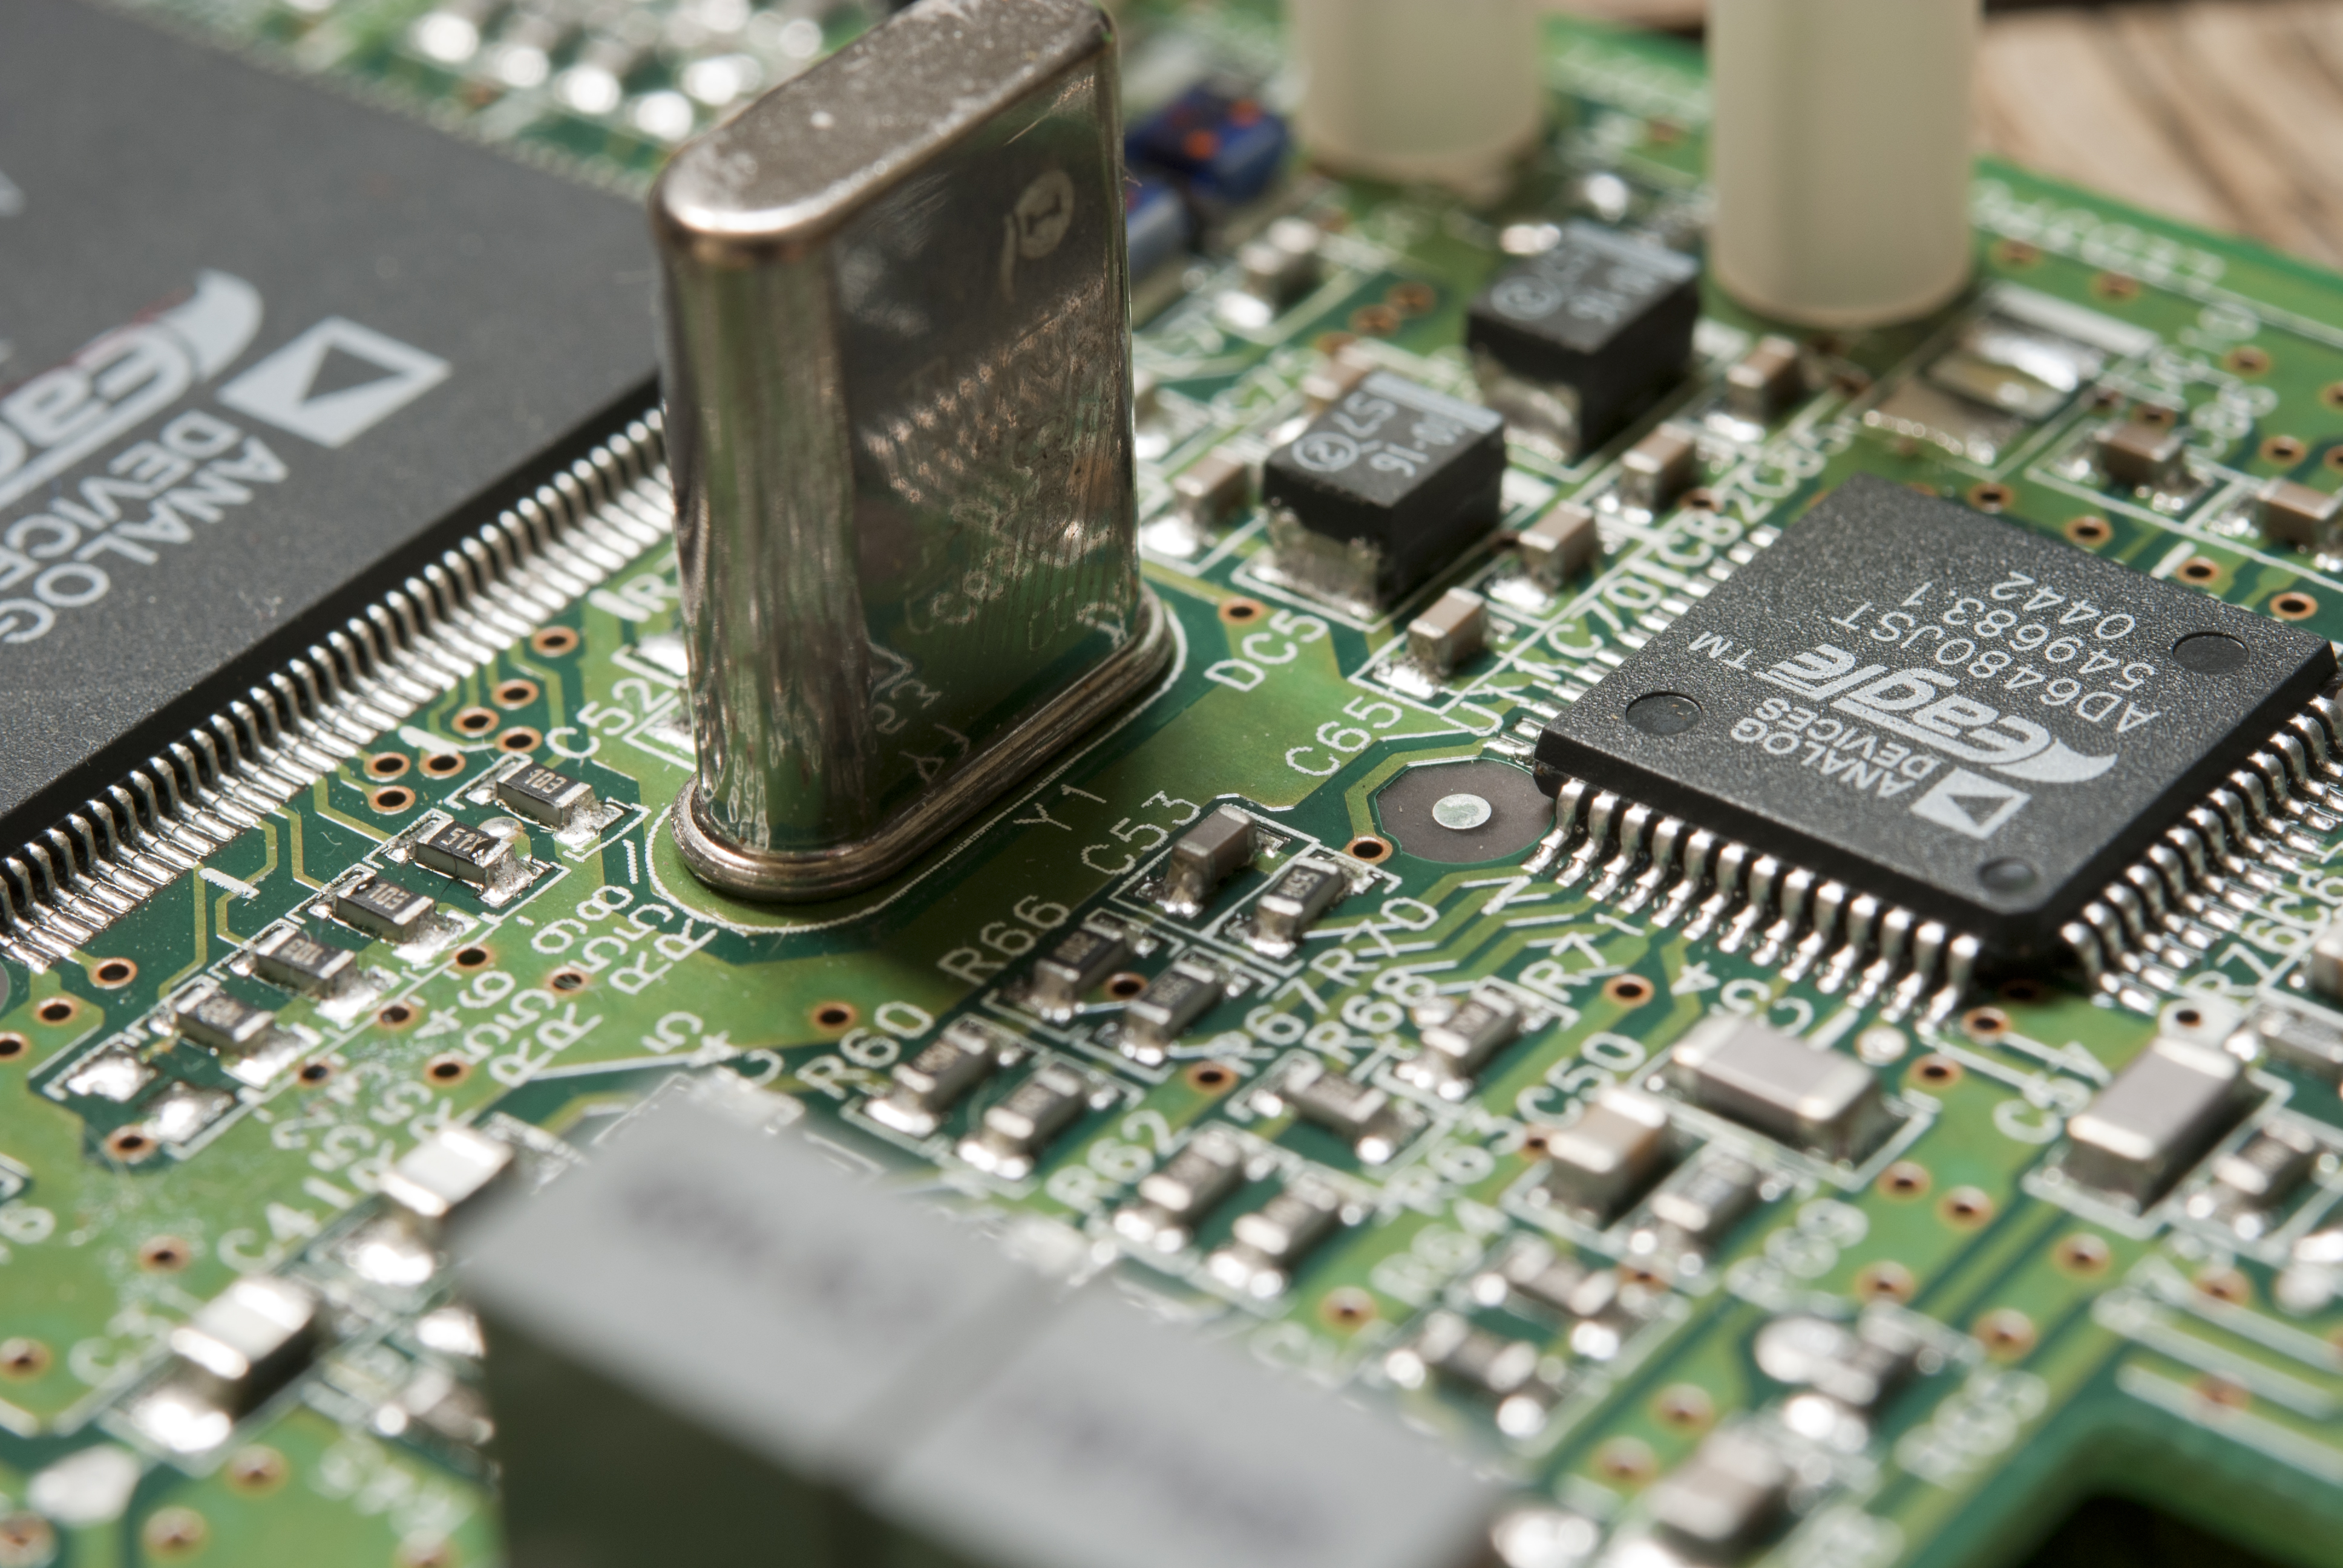 Free Photo Integrated Circuit Microchip Microprocessor Silicon Icintegrated Ic Chip Component Electronic